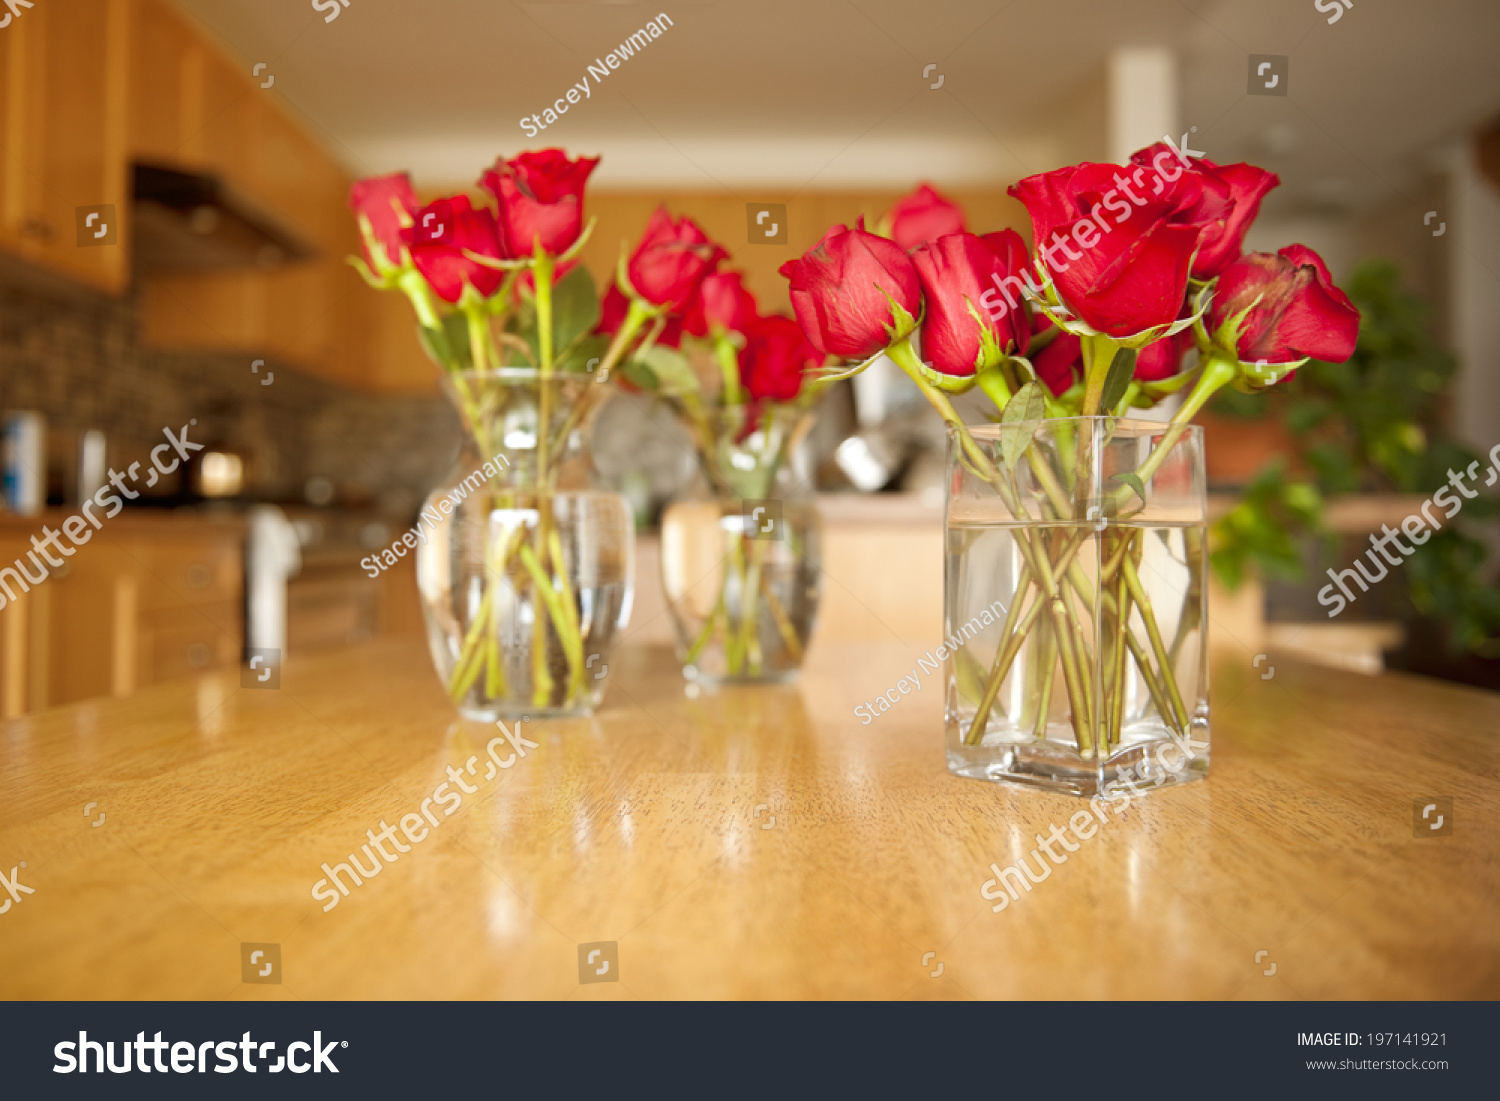 Three glass vases red roses sitting stock photo 197141921 three glass vases of red roses sitting on a kitchen counter reviewsmspy